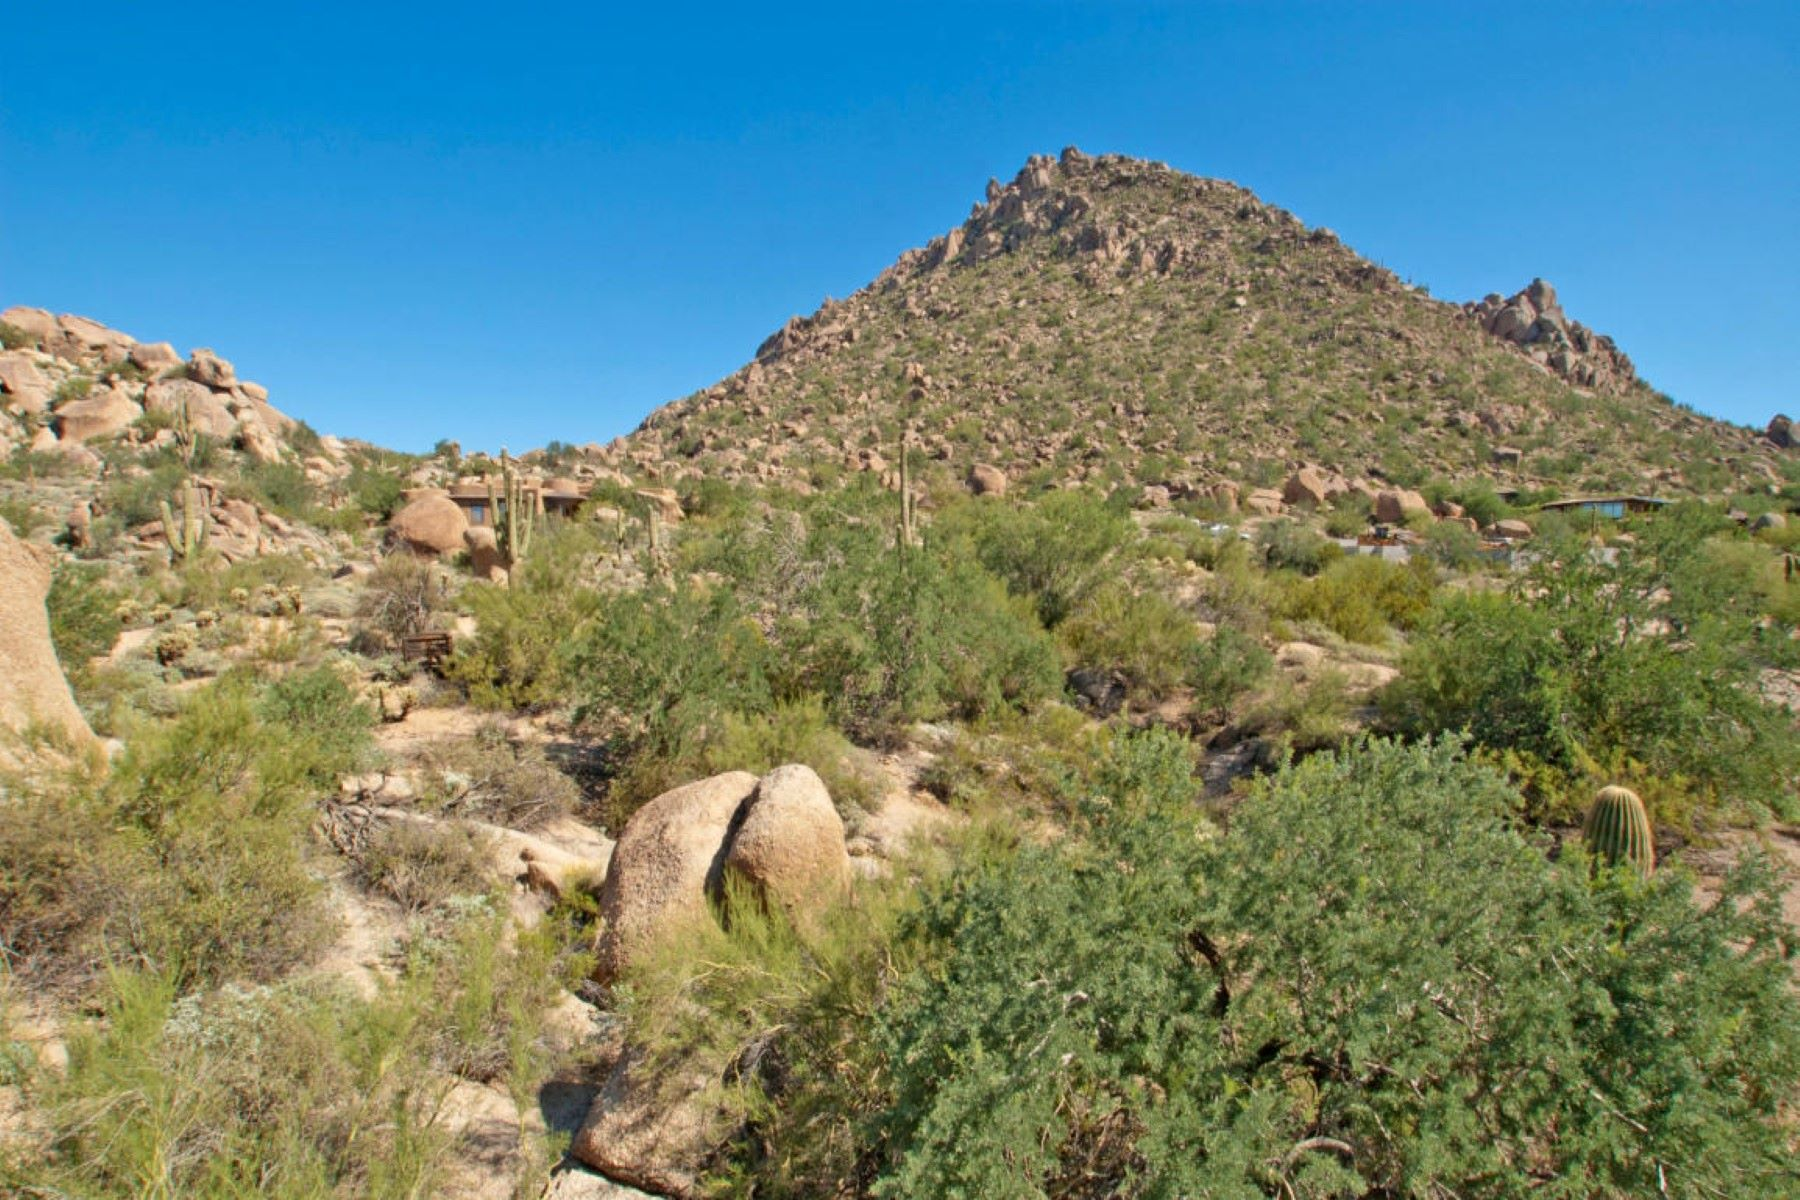 Terreno para Venda às One of eleven custom home sites nestled in the boulders of the Troon Mountain 10902 E Tusayan Trl #67 Scottsdale, Arizona, 85255 Estados Unidos